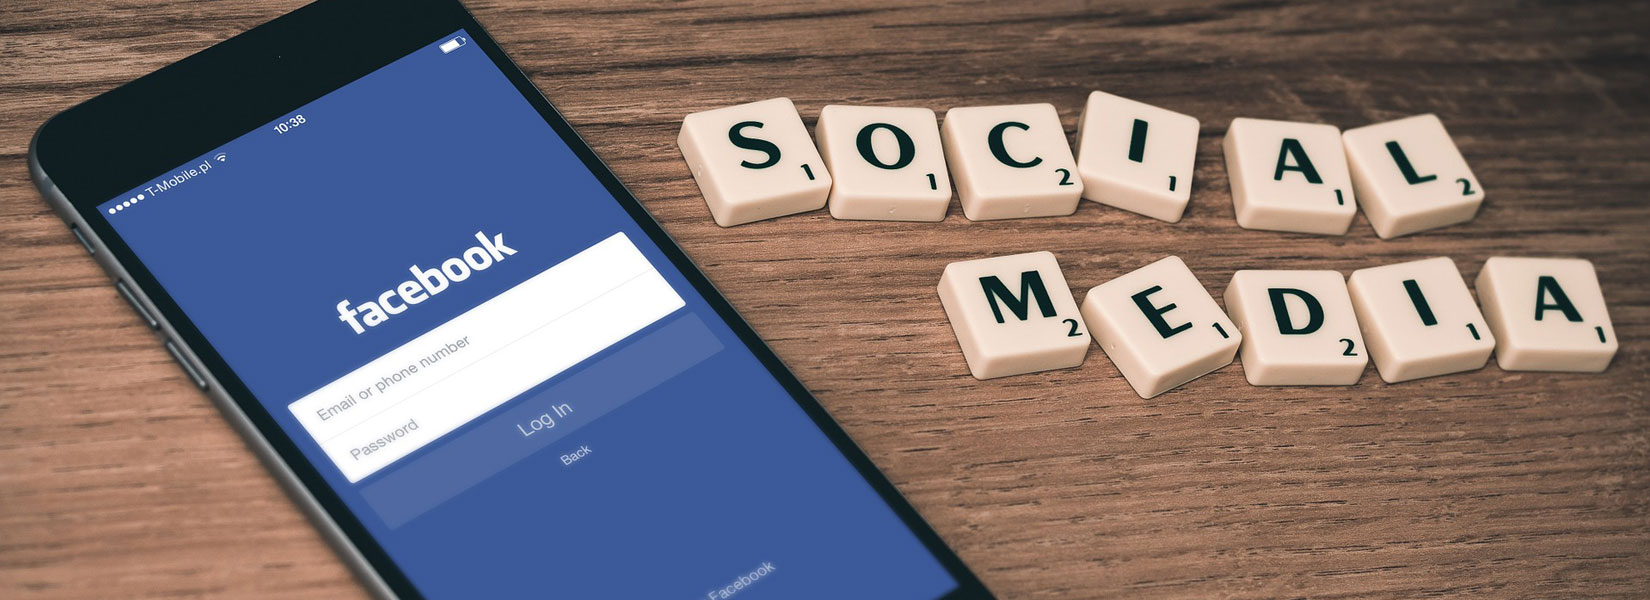 Can I Use Social Media as Evidence? | Car Accident Lawyer Baton Rouge